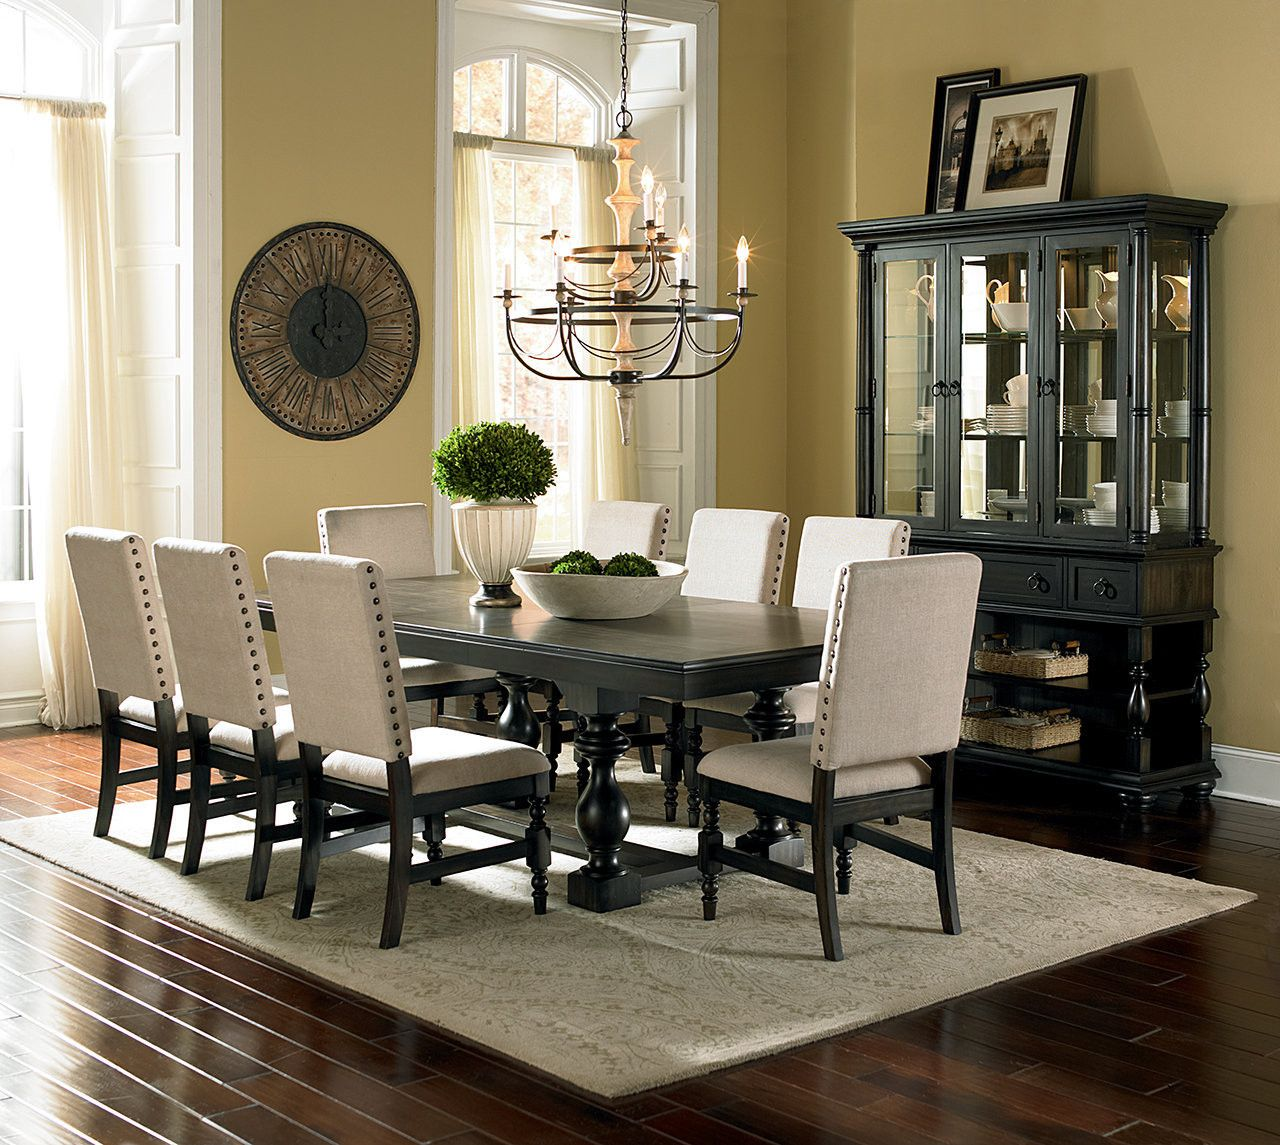 2019 dining room chairs fabric modern vintage furniture check more at http